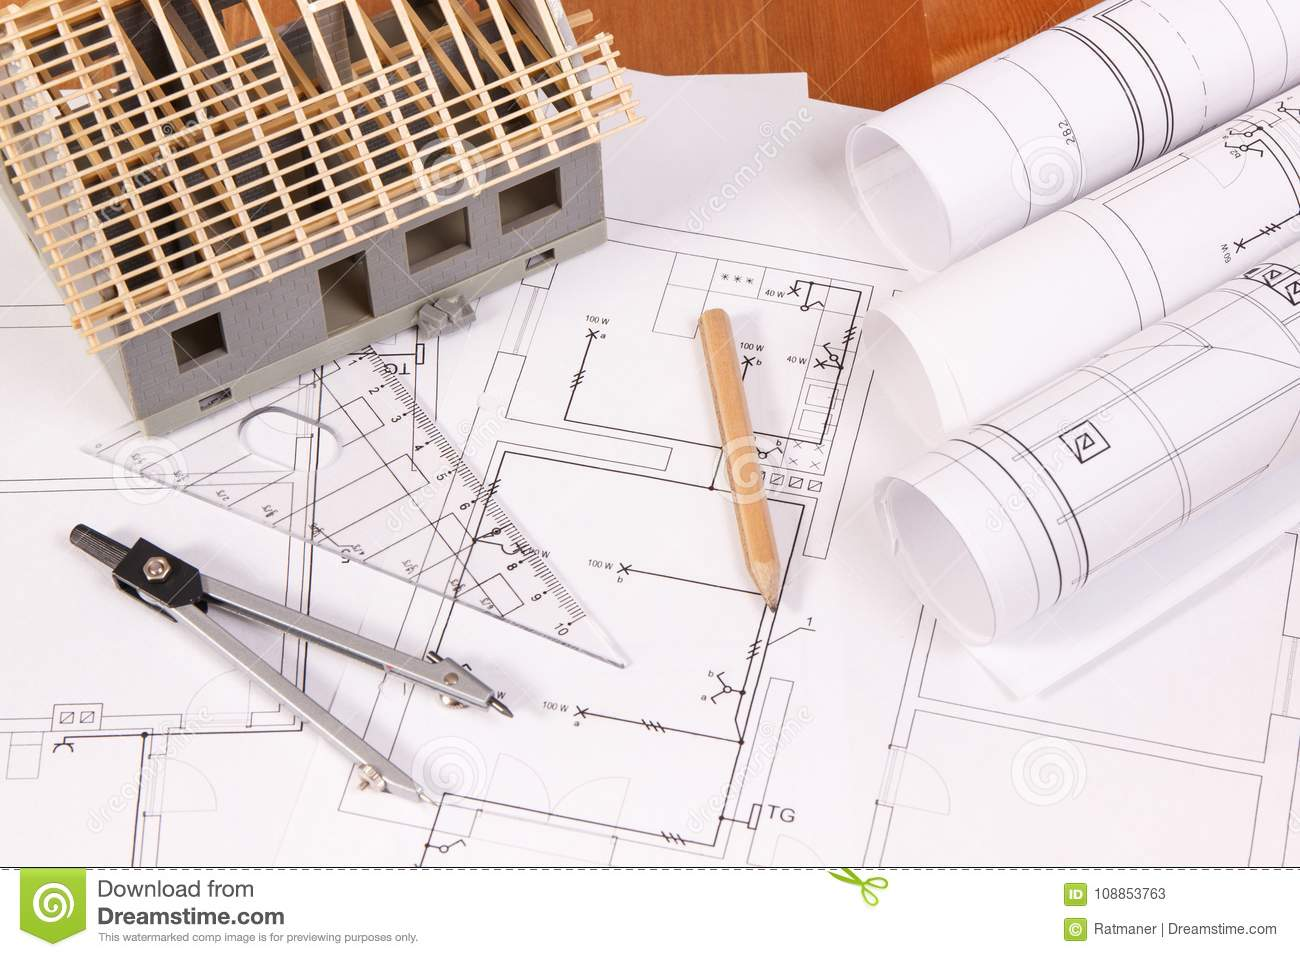 Electrical diagrams, accessories for engineer jobs and house under  construction on desk, building home